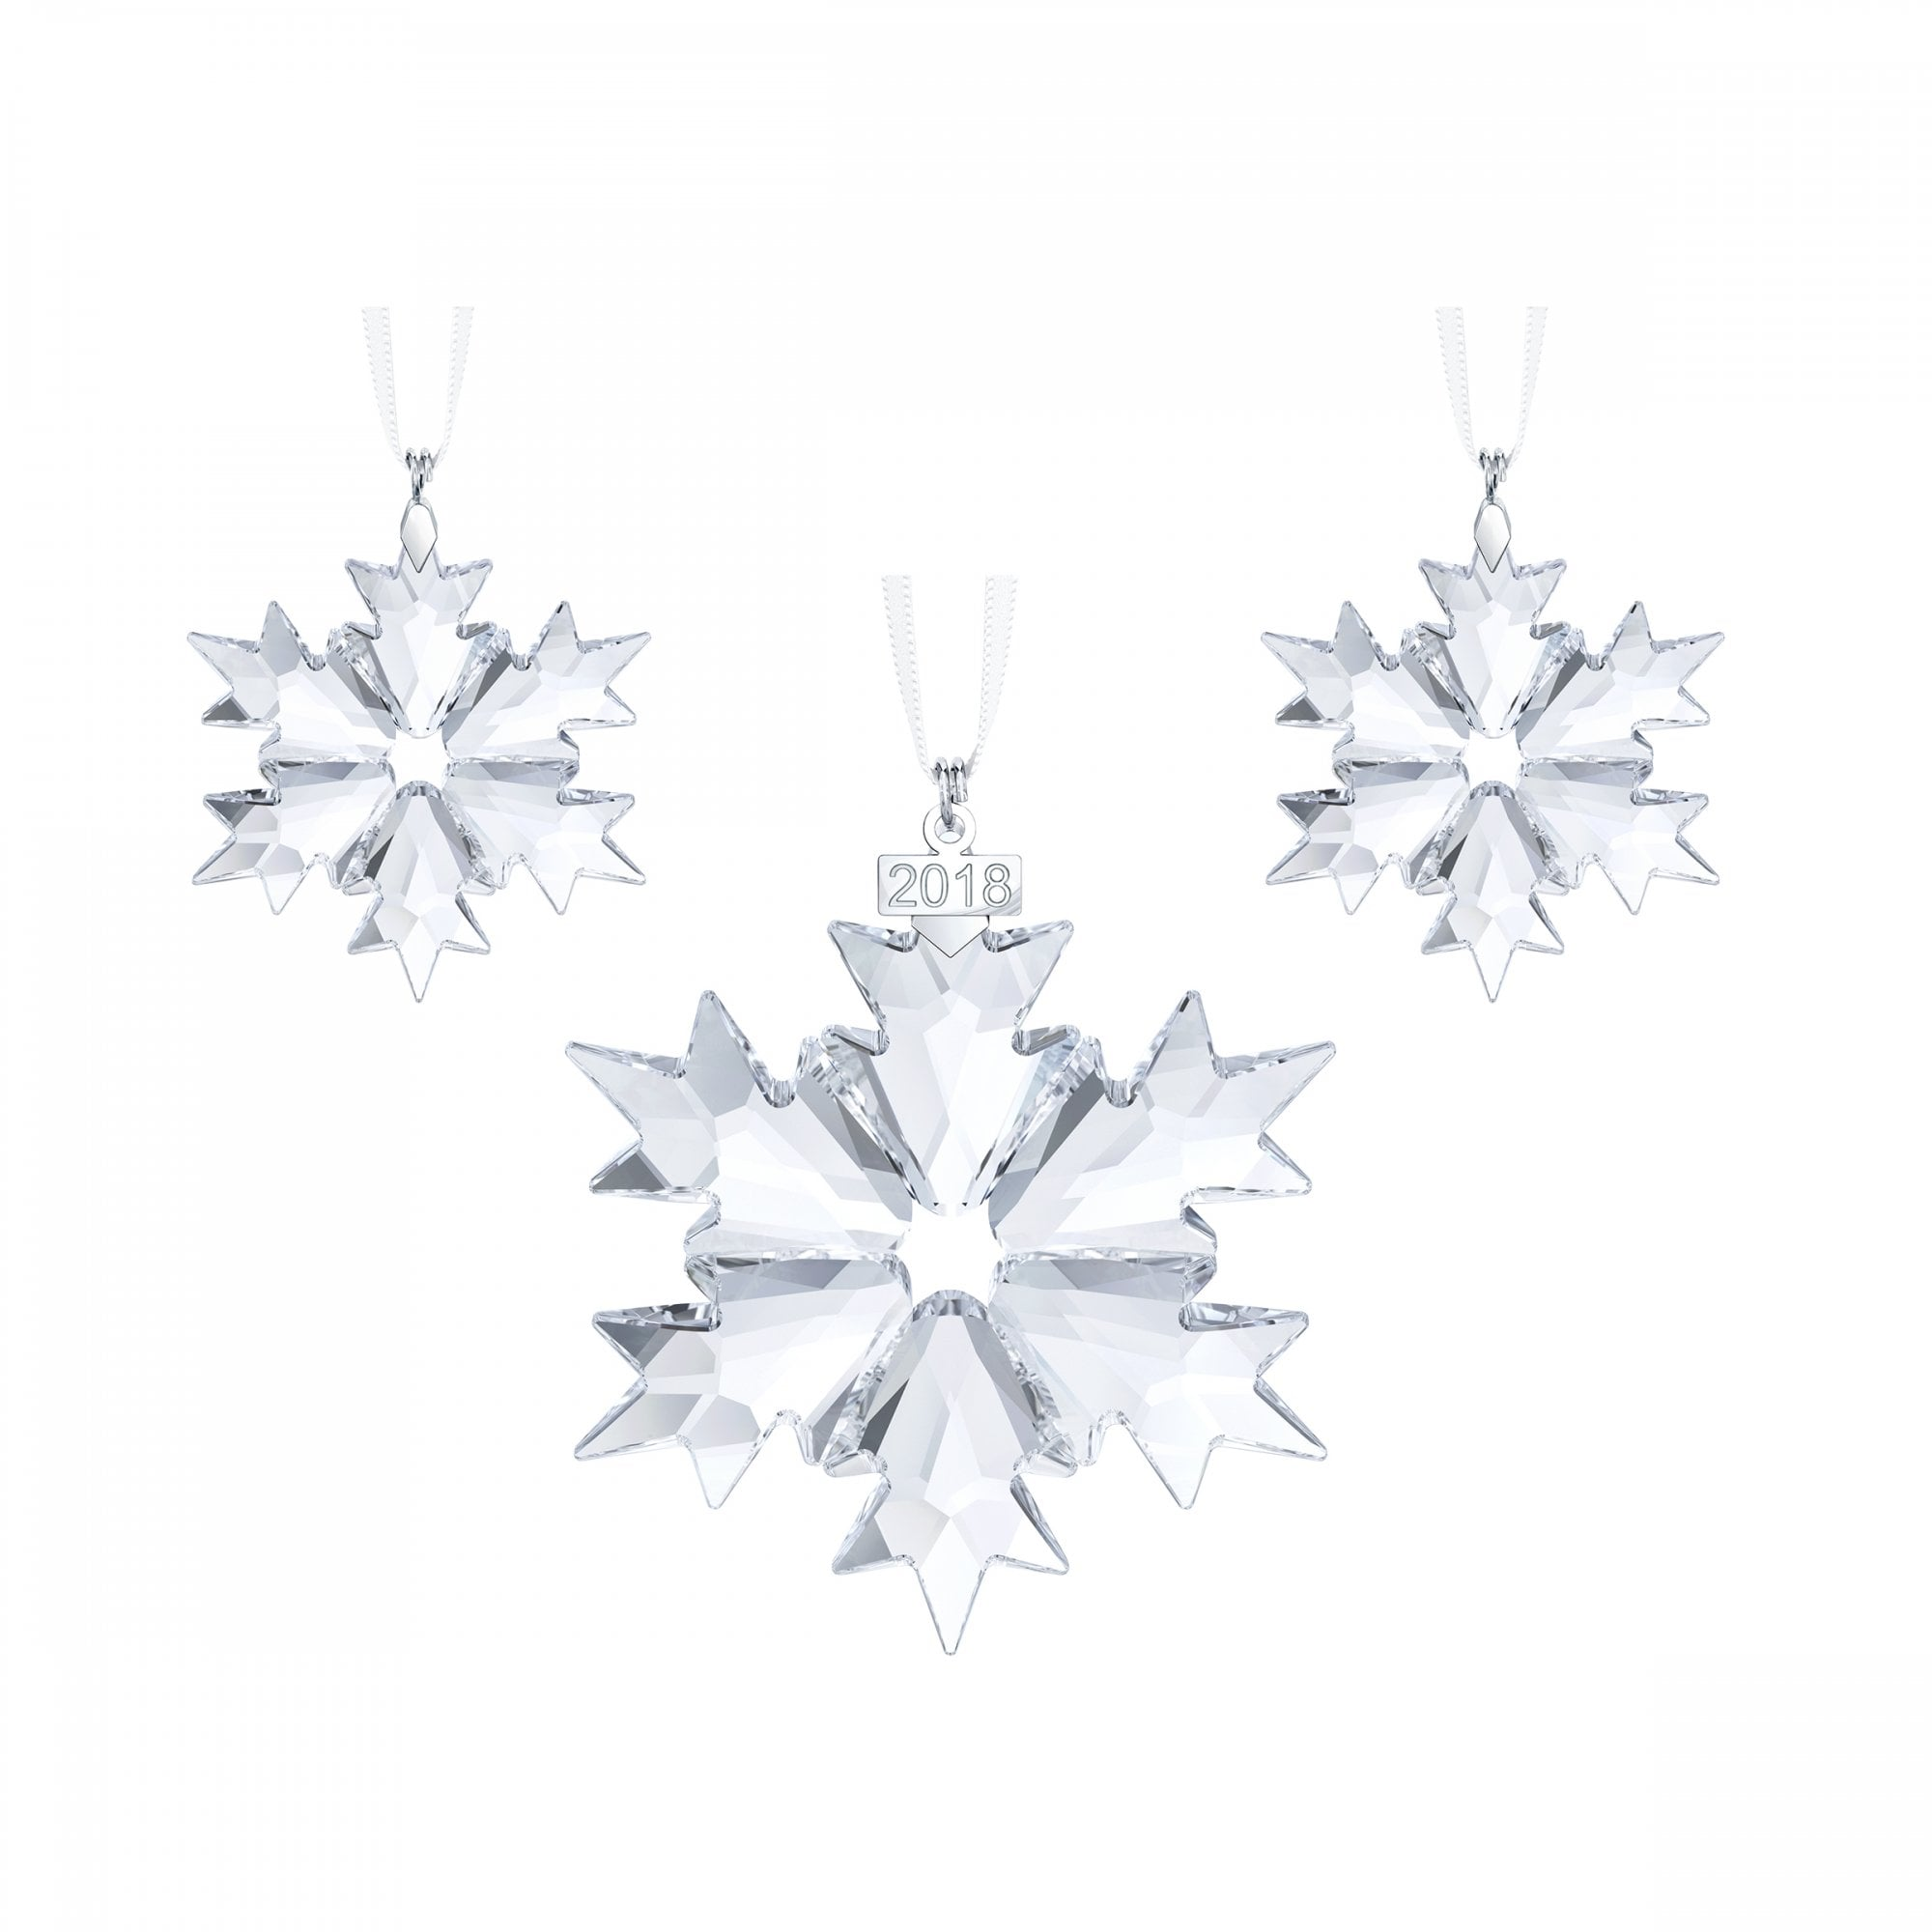 Swarovski ornament snowflake Annual Edition with  No Year on Snowflake